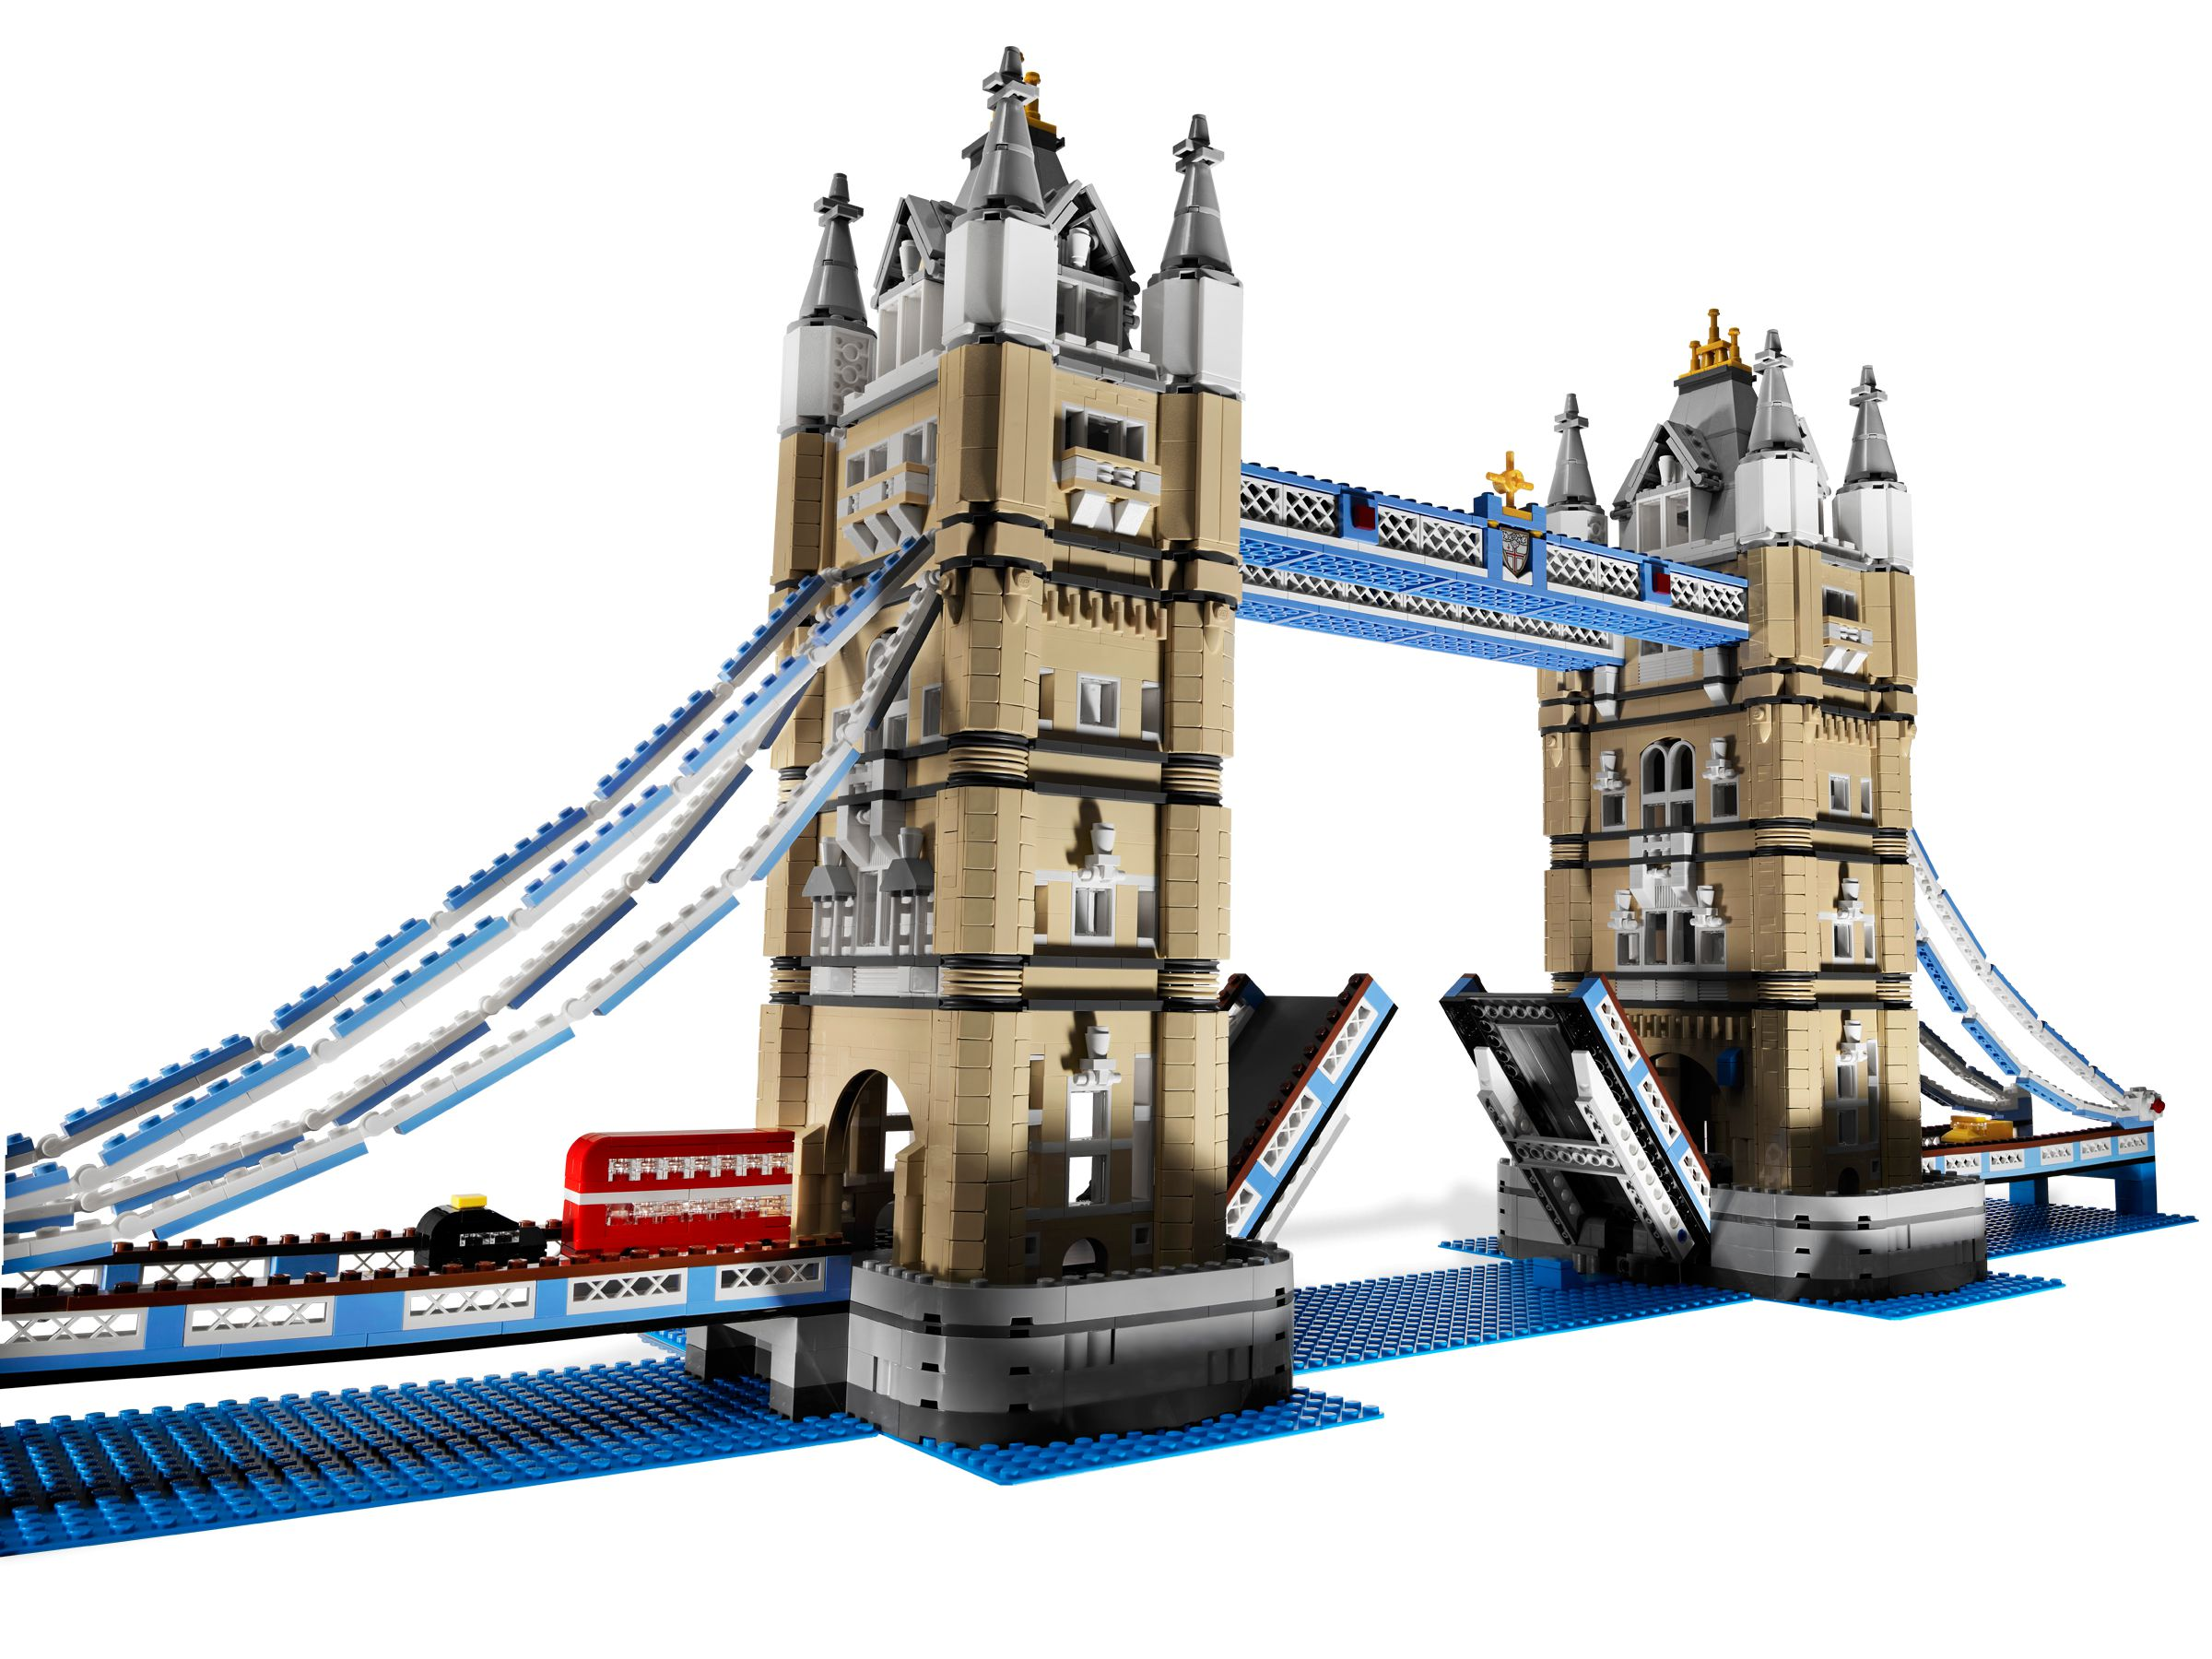 LEGO Advanced Models 10214 Tower Bridge LEGO_10214_alt2.jpg